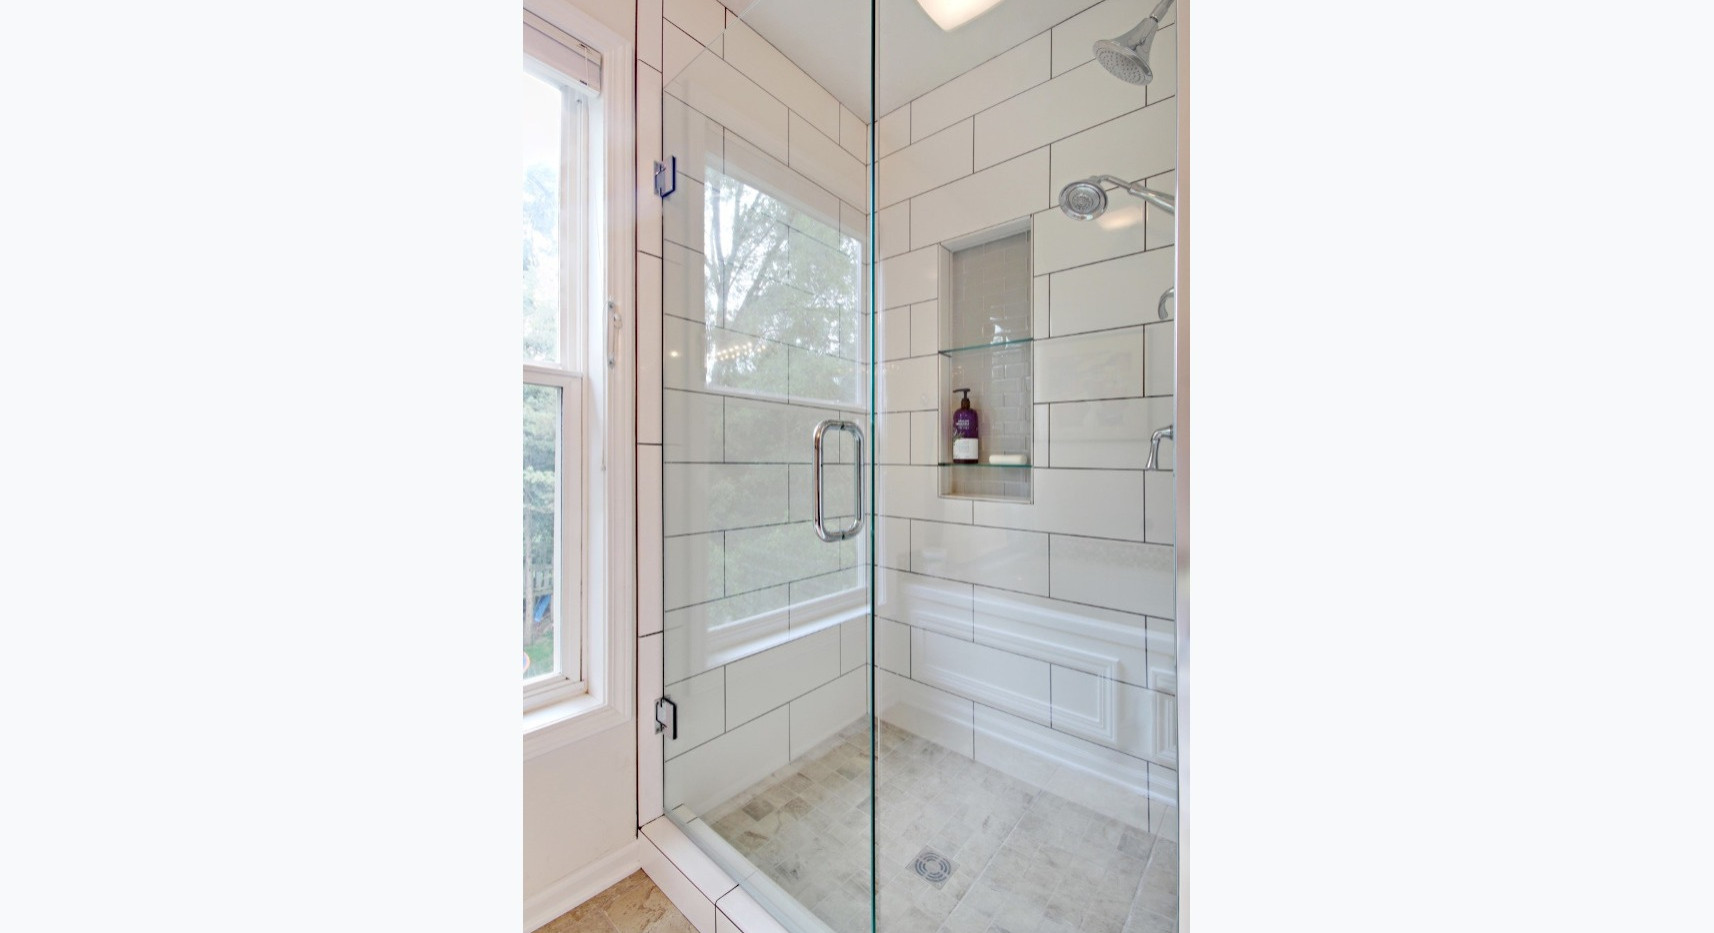 Stunning new standing shower design in partial bathroom remodel by Renew Home Improvement remodeling contractor